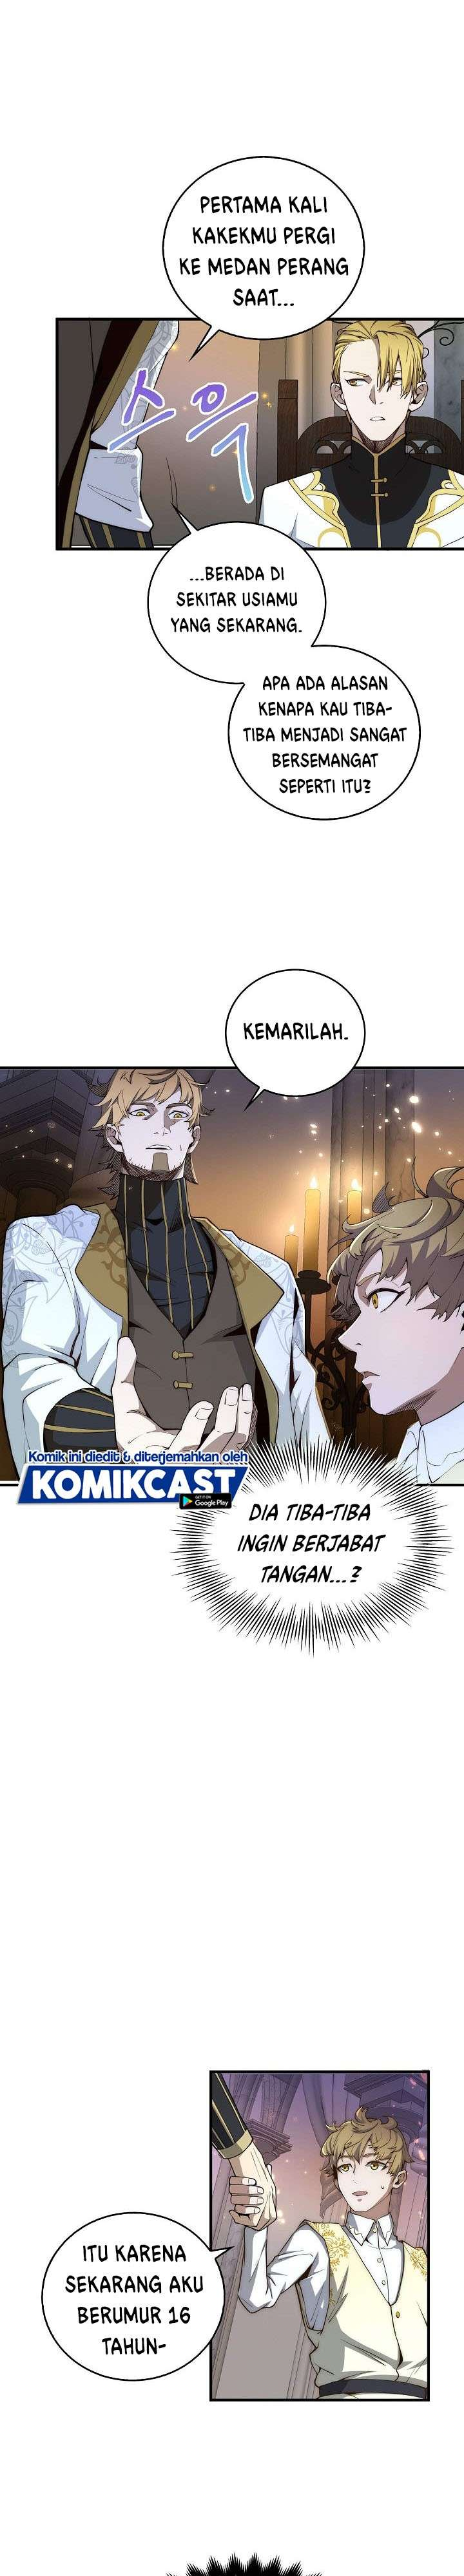 The Lord's Coins Aren't Decreasing?! Chapter 04 Bahasa Indonesia page 21